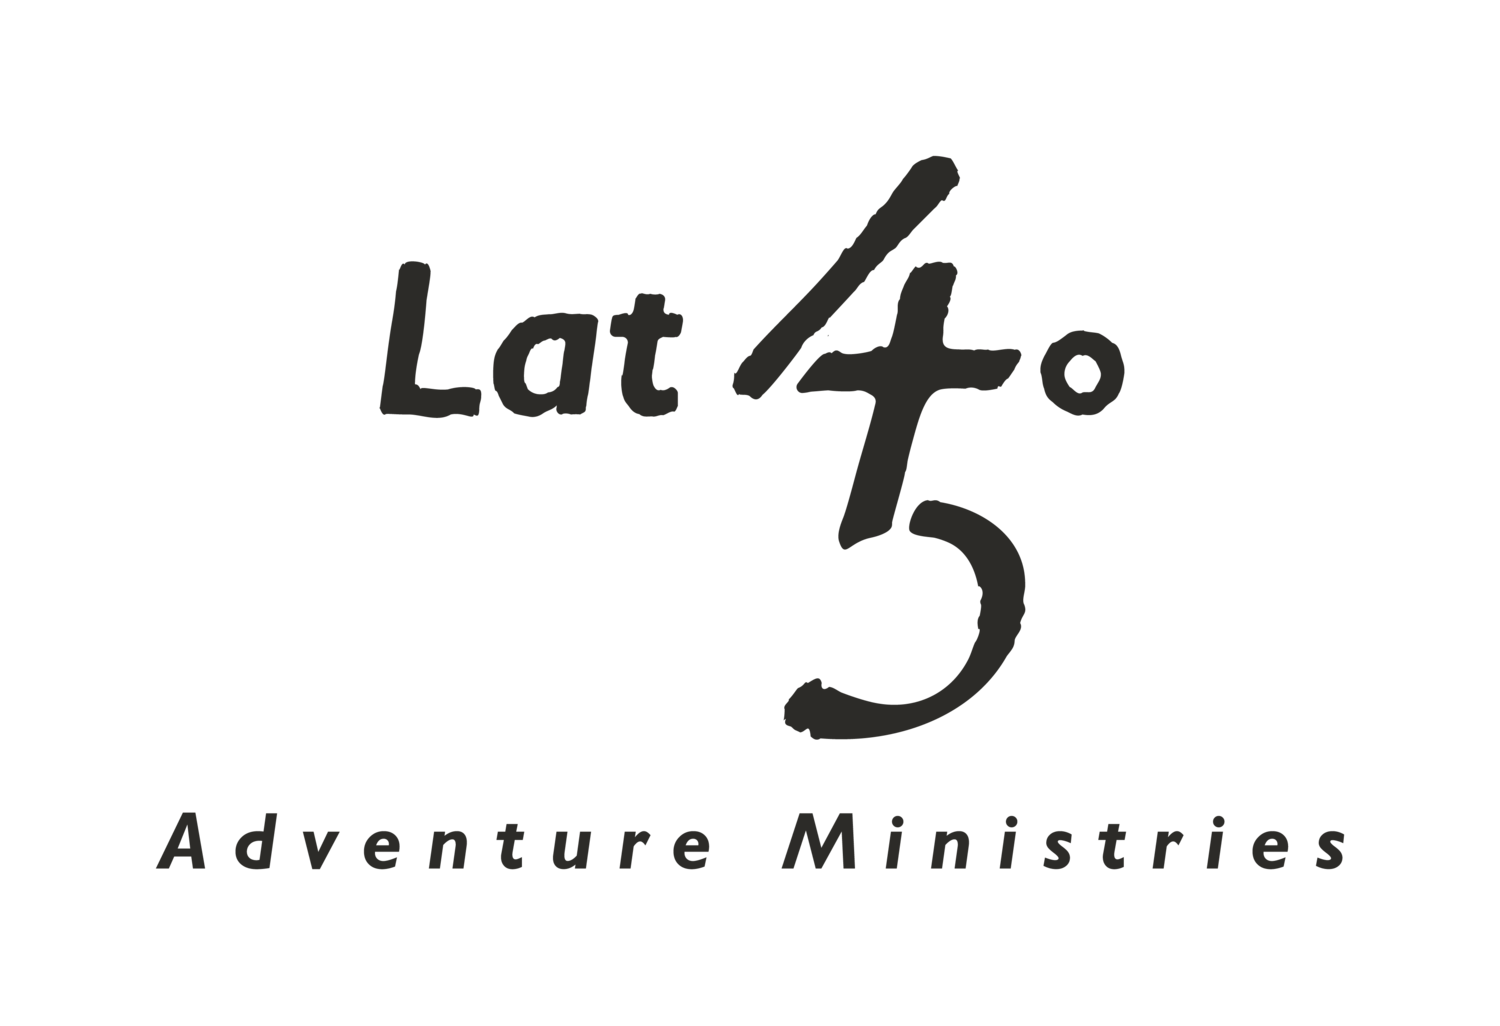 Lat45 Adventure Ministries